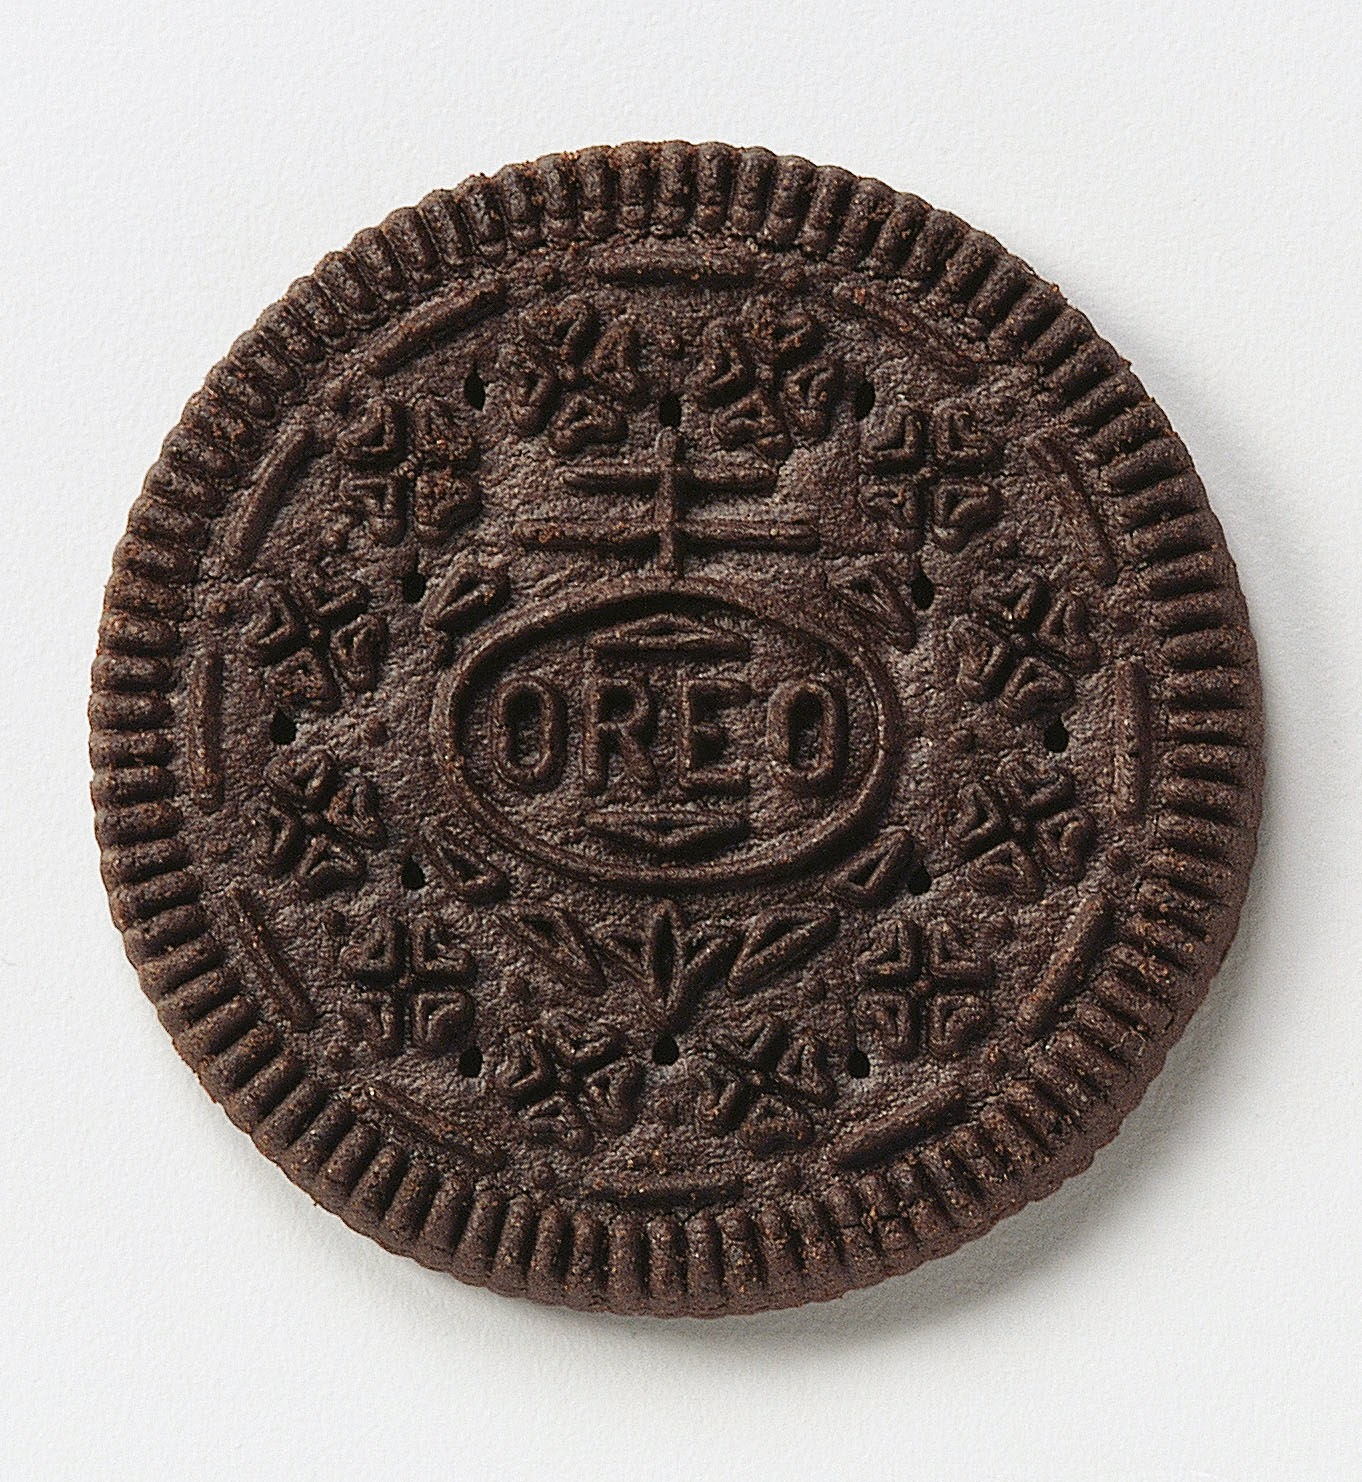 Shop Philadelphia Candies Milk Chocolate Covered OREO Cookies, Happy Birthday Gift Net Wt 8 oz and other Snack Foods at adult3dmovie.ml Free Shipping on Eligible Items.